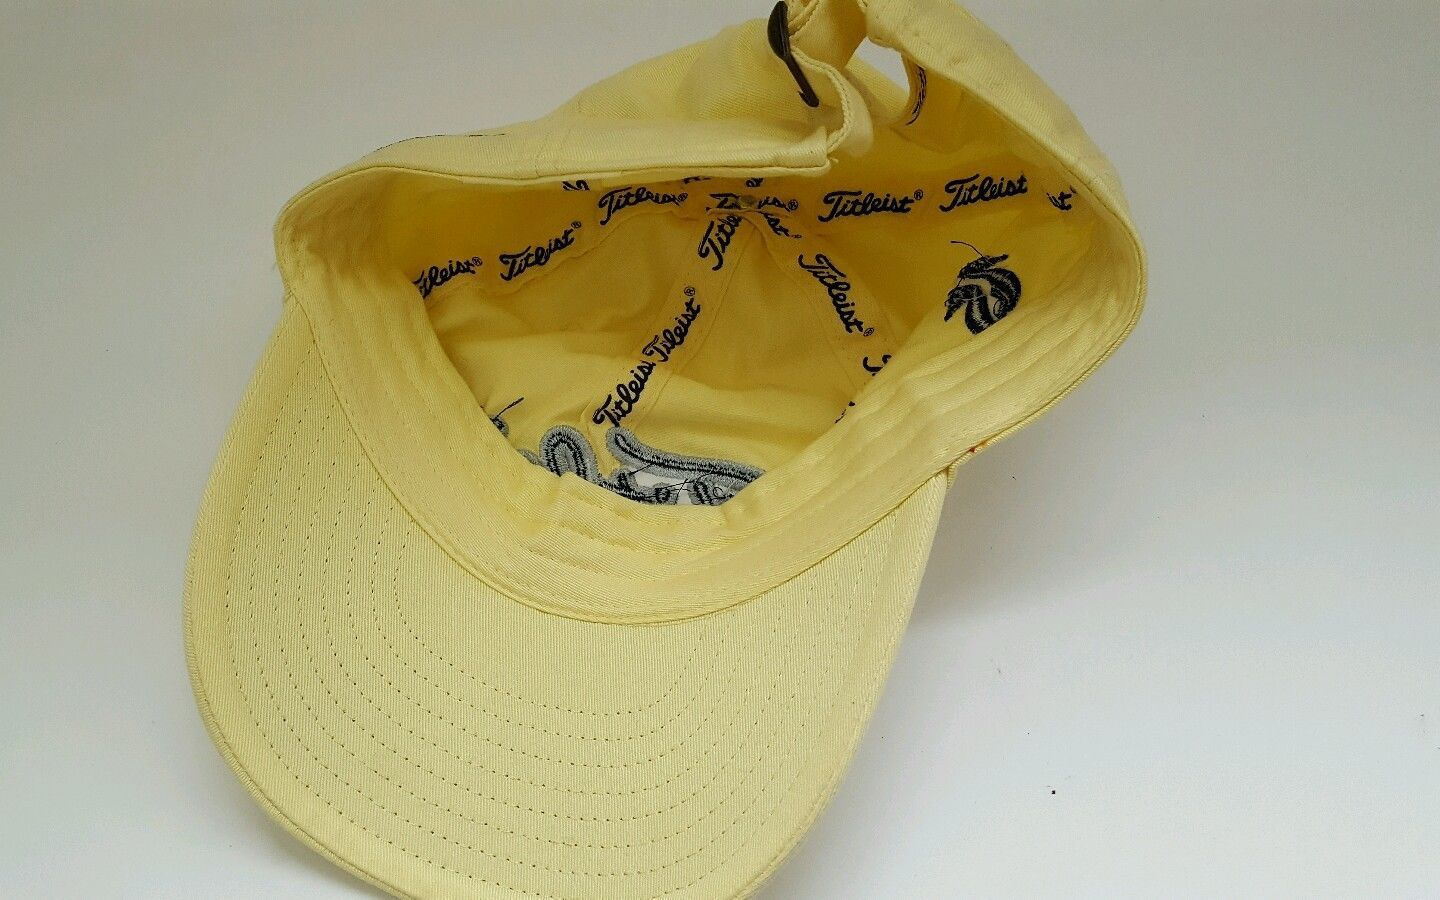 TITLEIST Women s Golf Hat Baseball cap Pro V1 Wailea logo Cap Yellow eadd4f491cdc